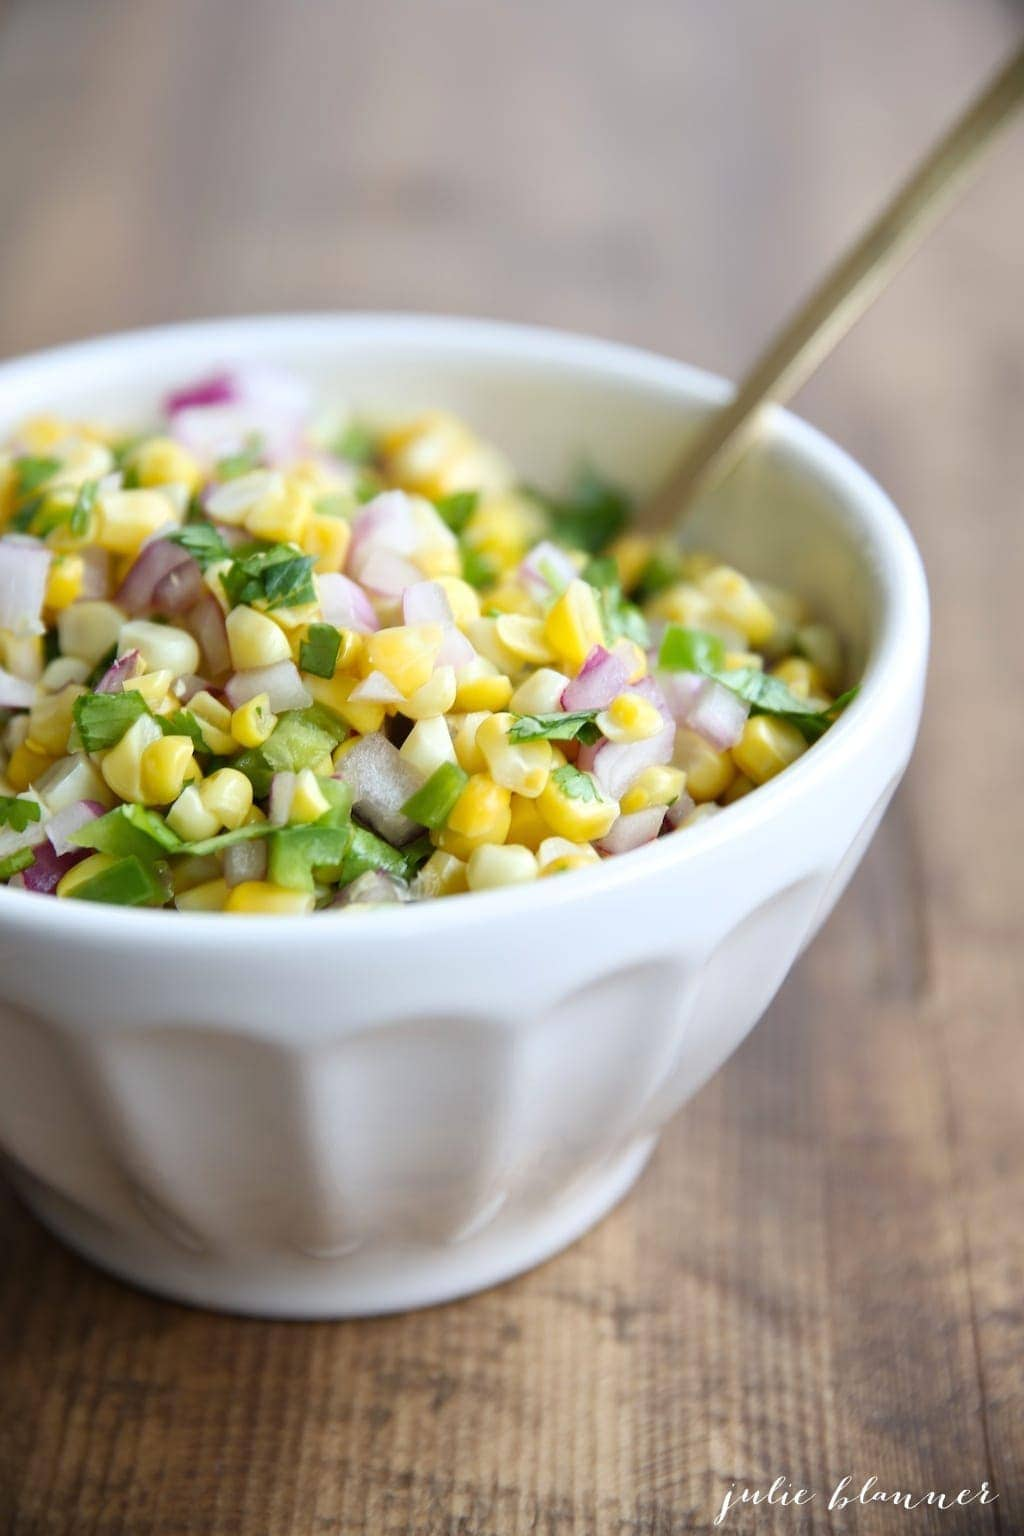 This Chipotle Corn Salsa Recipe is a fresh and easy dip or topping for tacos, quesadillas, burritos and more! Add this Chipotle Corn Salsa to your burrito bowls for the ultimate Chipotle copycat. #chipotle #cornsalsarecipe #chipotlecornsalsa